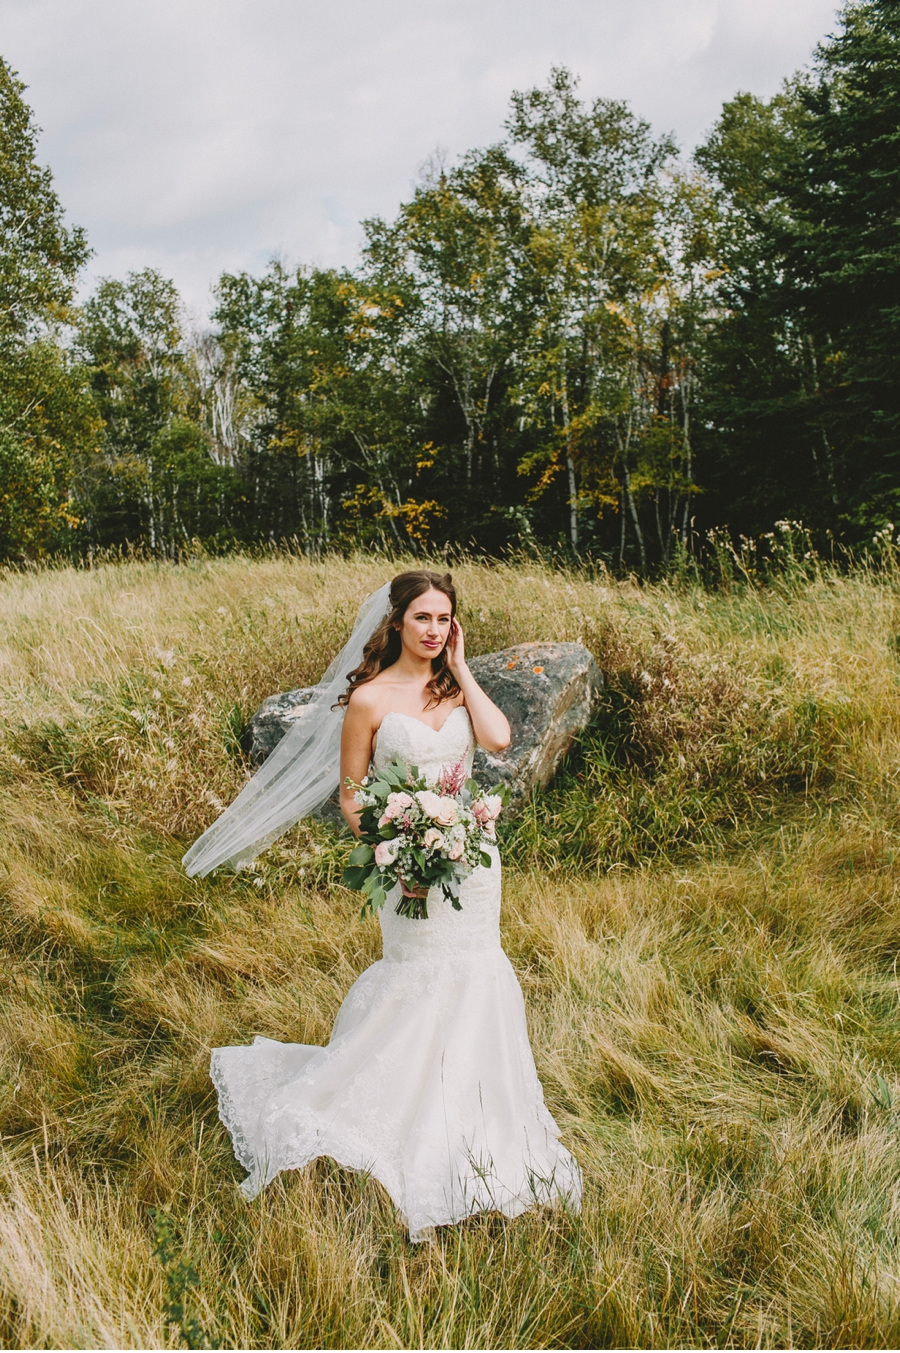 Windswept-Bride-in-a-Field